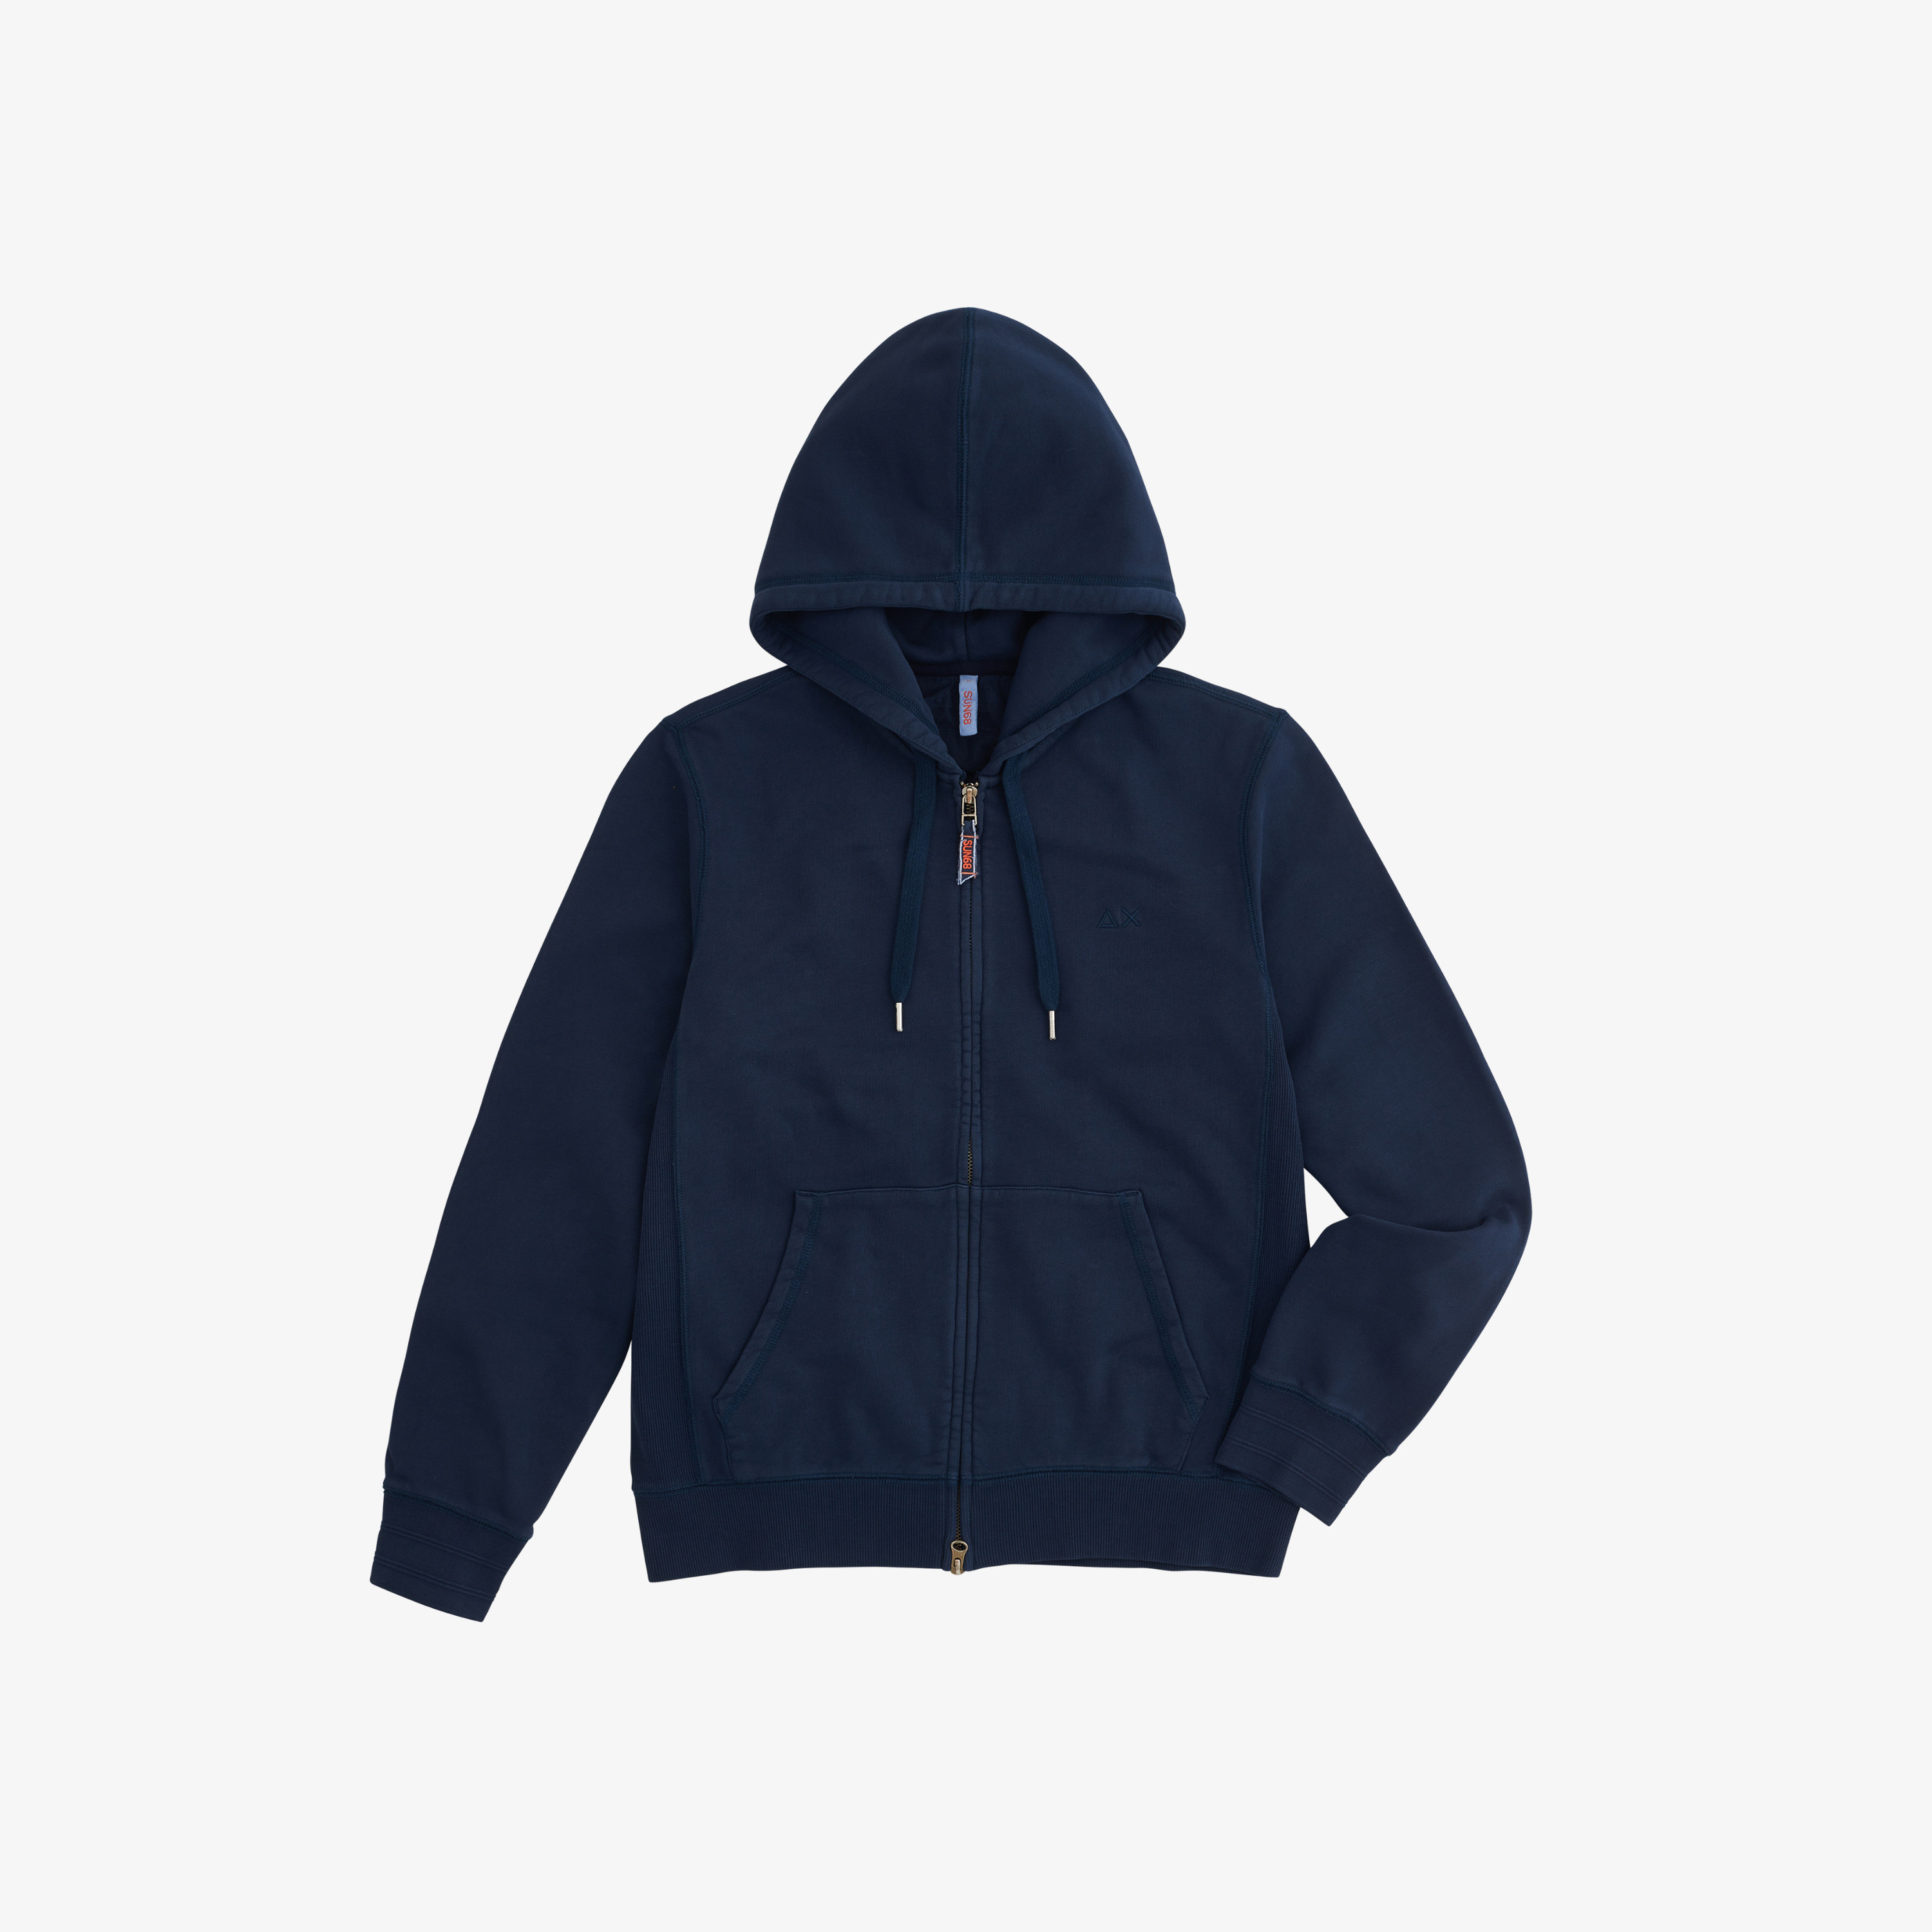 HOOD ZIP COLD DYE COTT. FL. NAVY BLUE